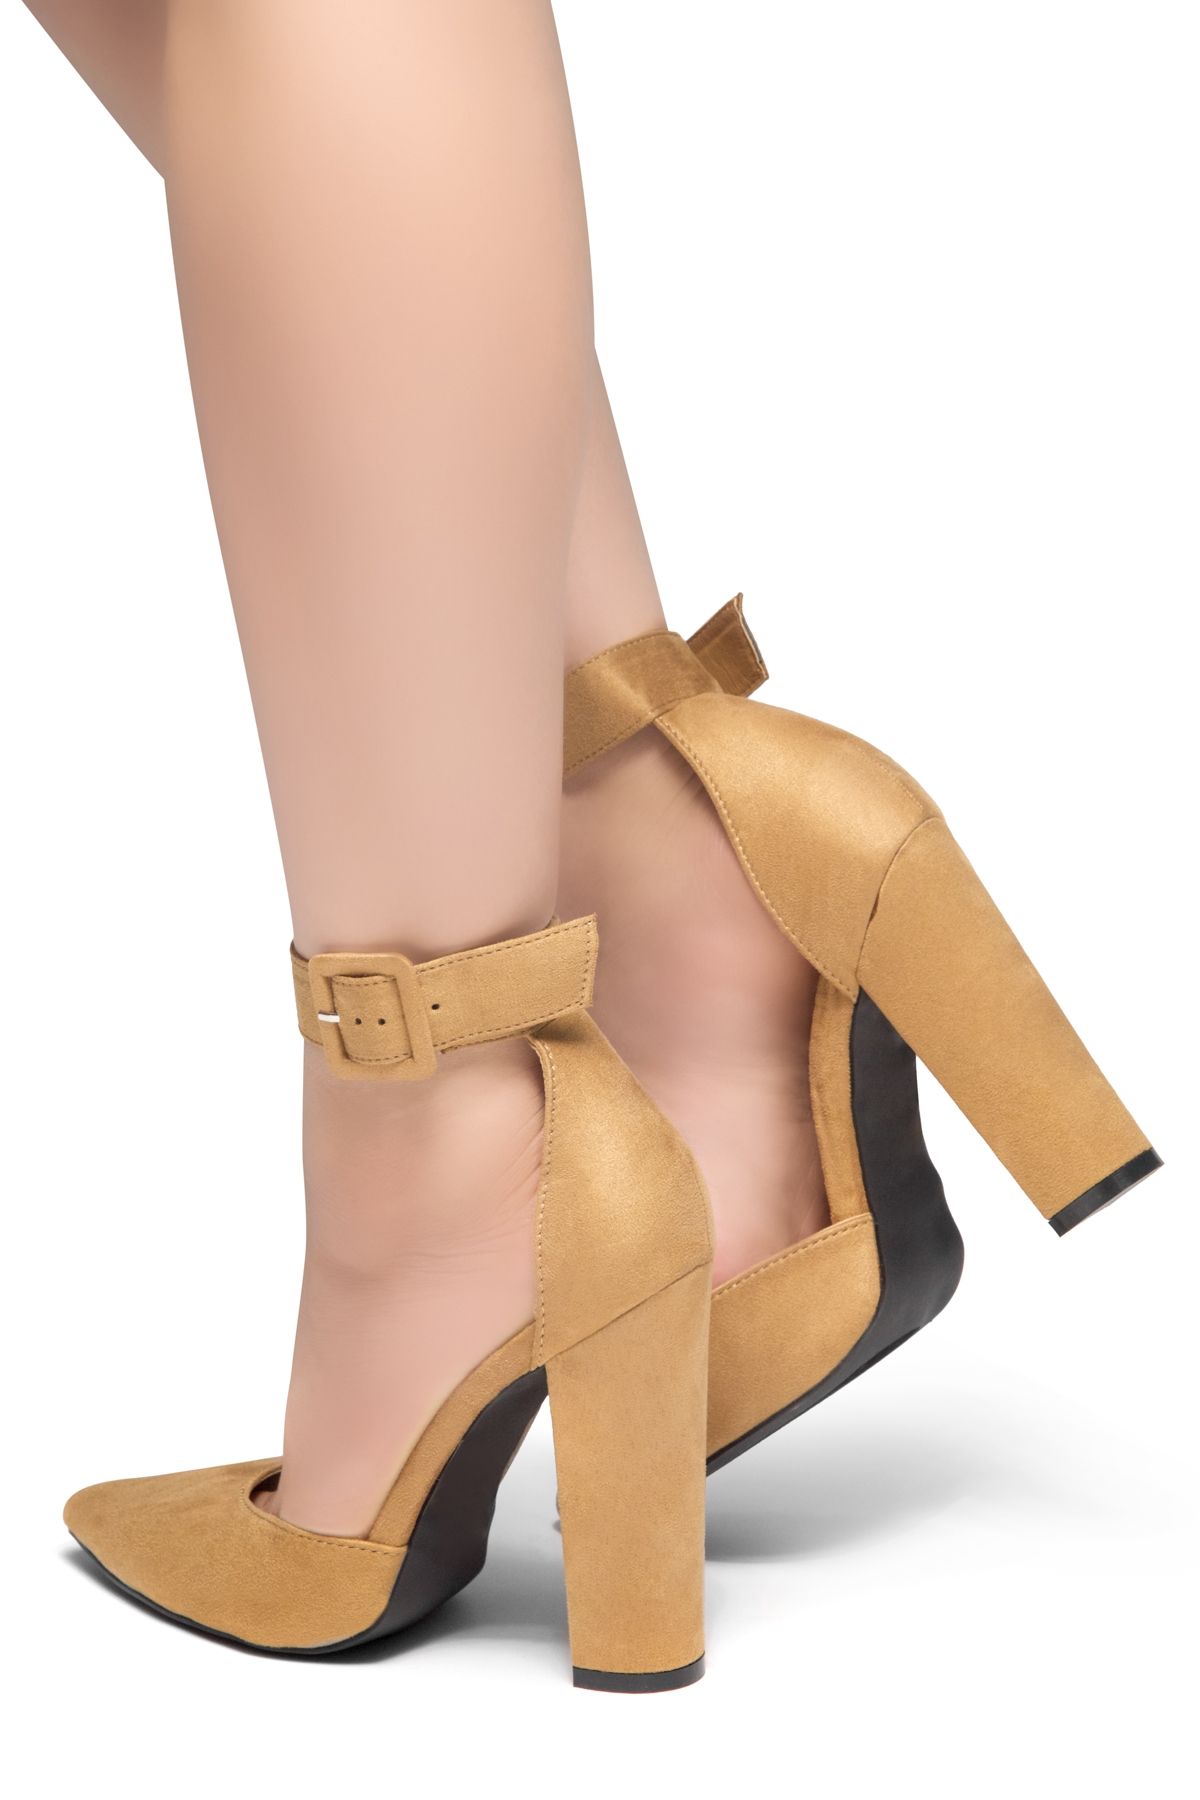 5bdd0934a76 HerStyle PEAK HOUR-Close Pointed Toe Chunky Heel Ankle Strap Sandals (Tan)